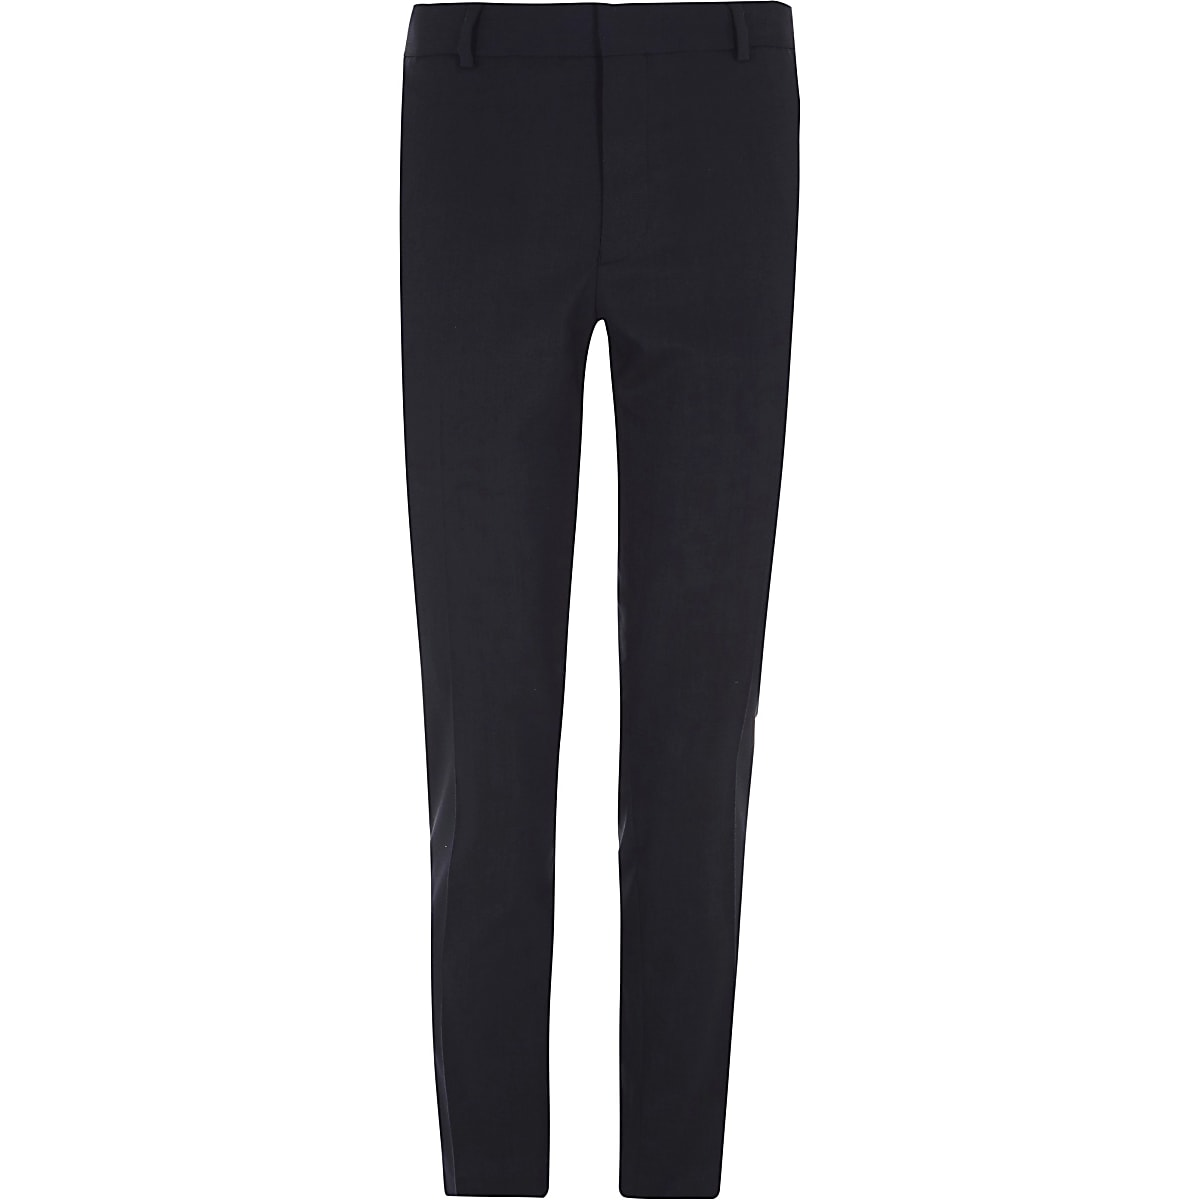 Big and Tall – Pantalon habillé bleu marine